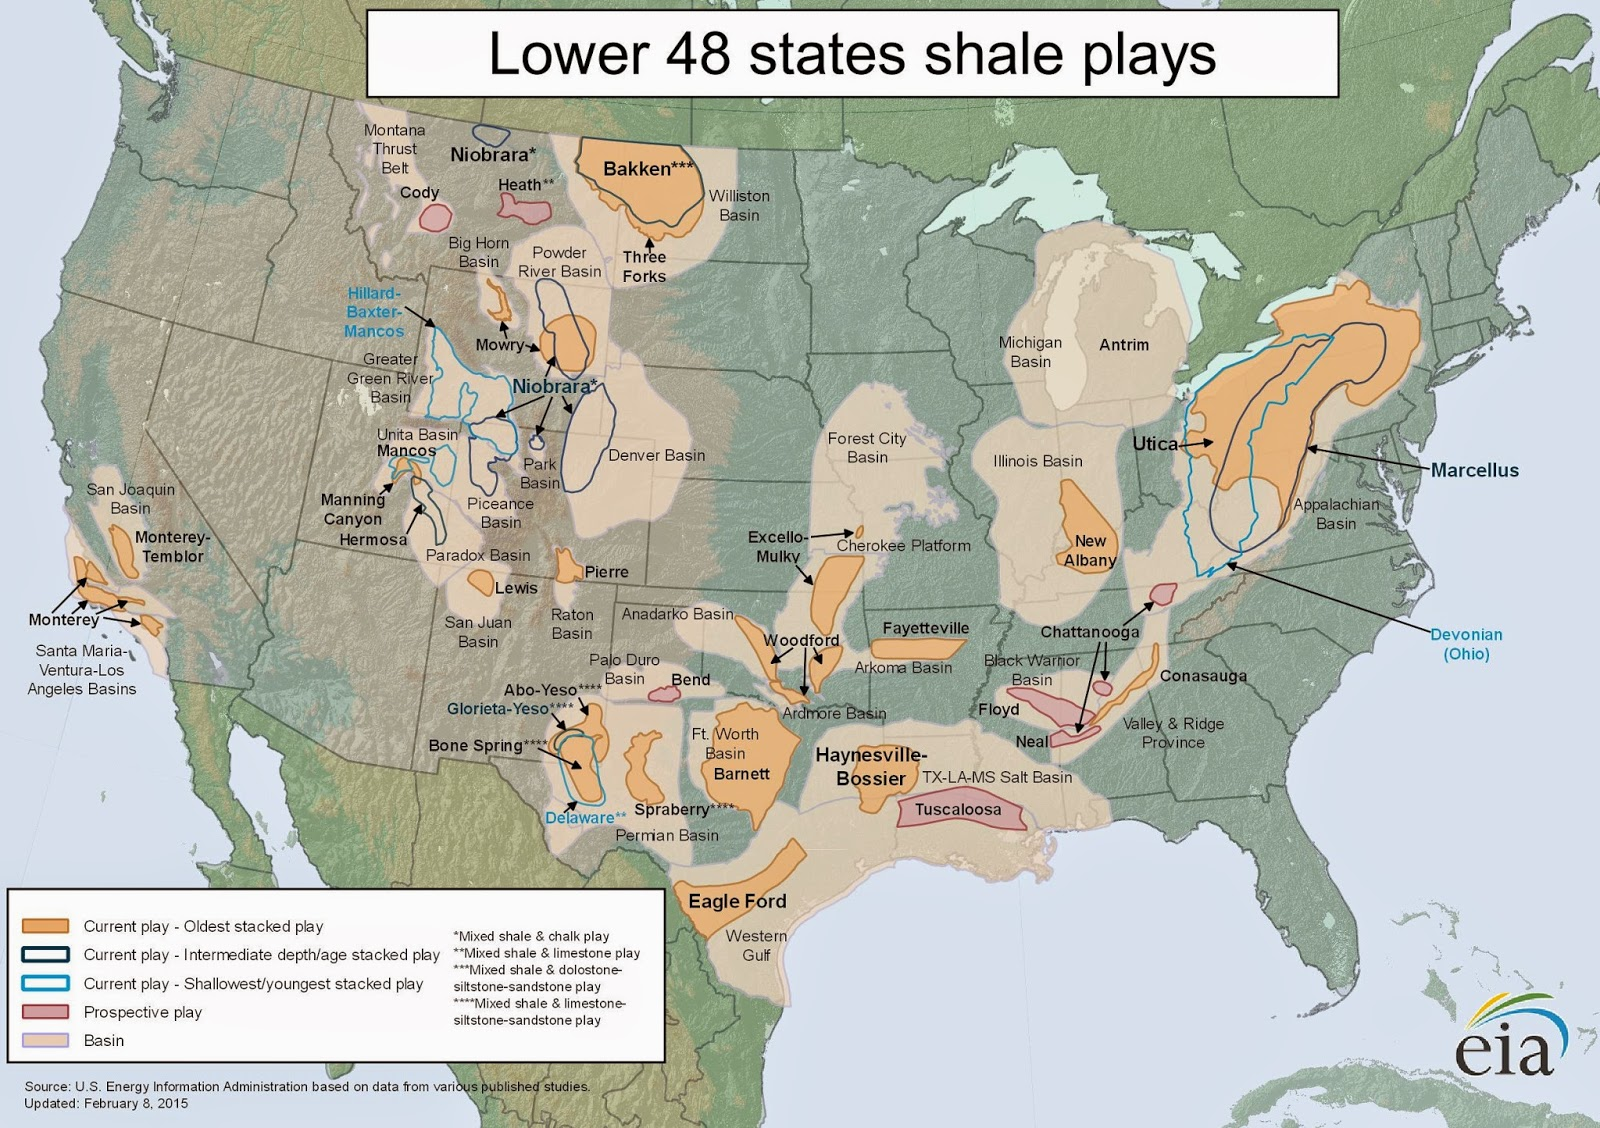 The Recession: Oil Shale Edition